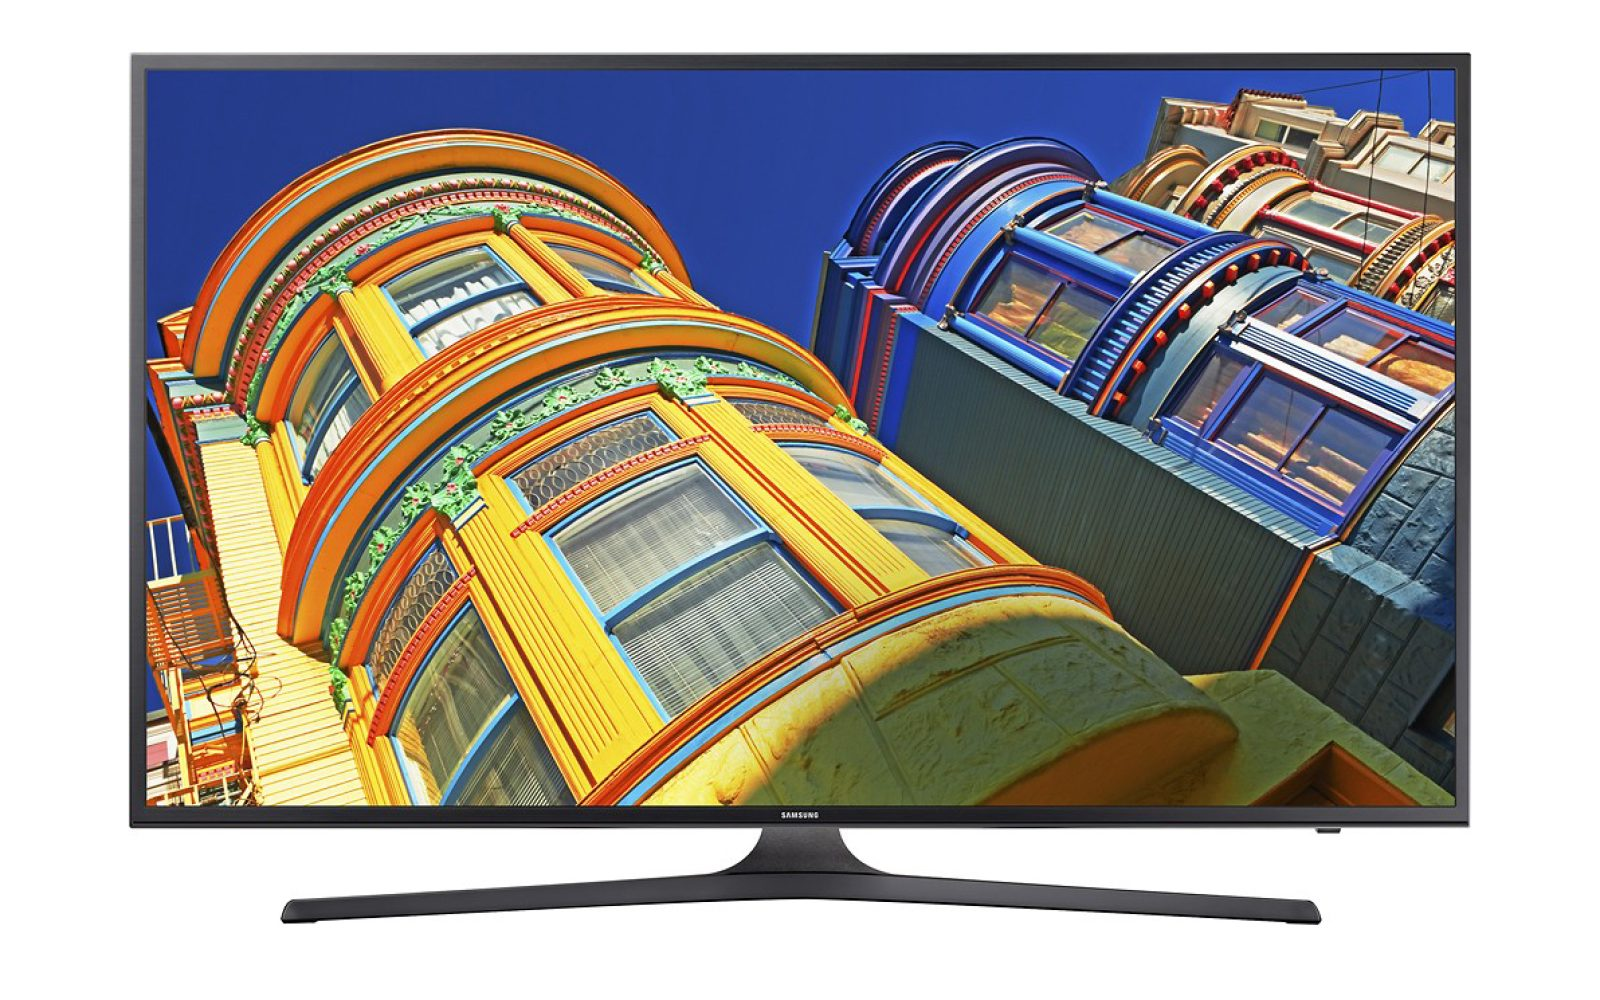 f03cacaad07 Samsung s 65-inch 4K Smart Ultra HDTV is on sale at Best Buy for  900  shipped (Reg.  1